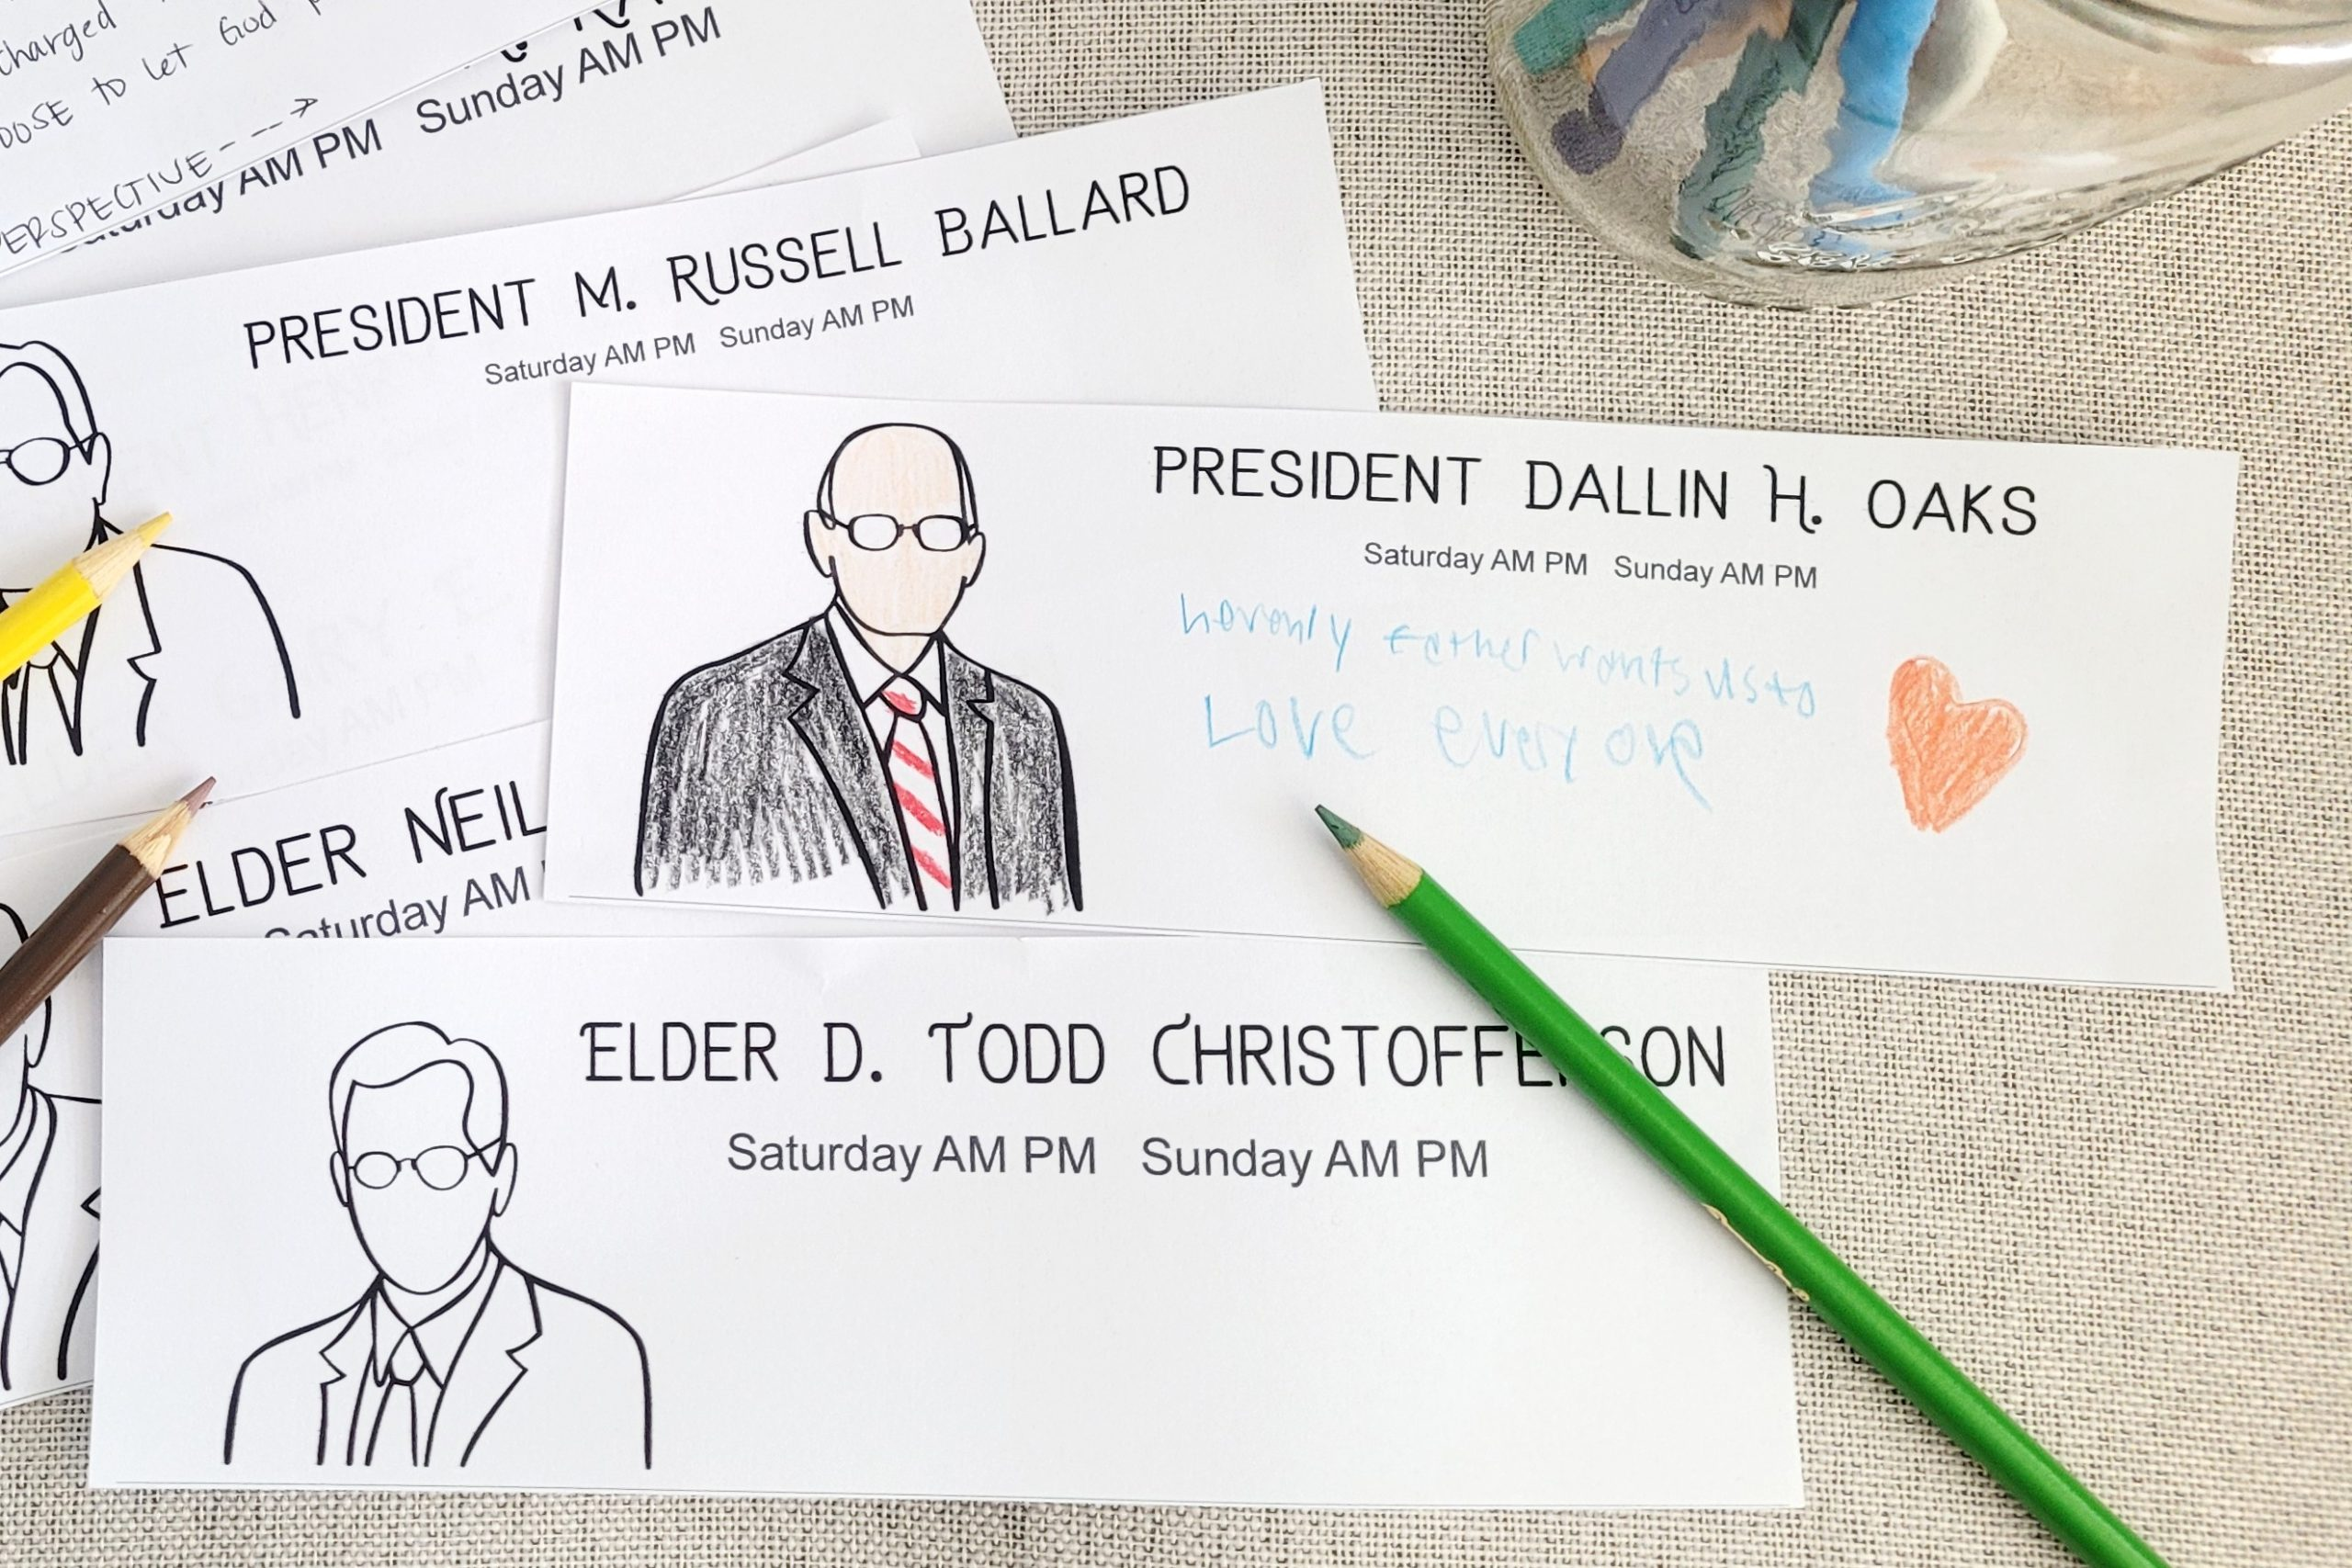 coloring activity for lds general conference